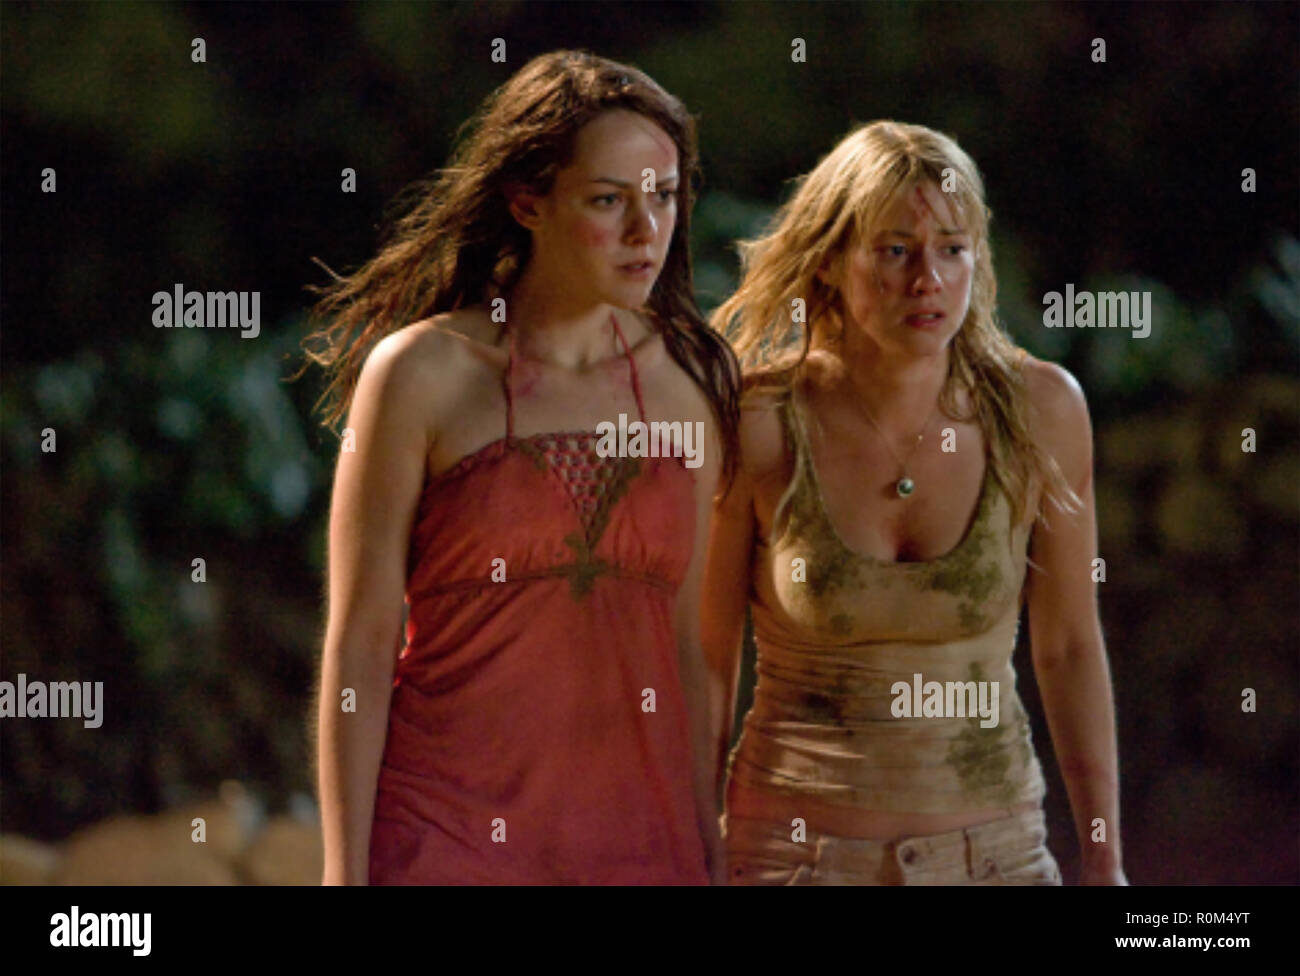 THE RUINS 2008 DreamWorks Pictures film with Jena Malone at left and Laura Ramsewy - Stock Image